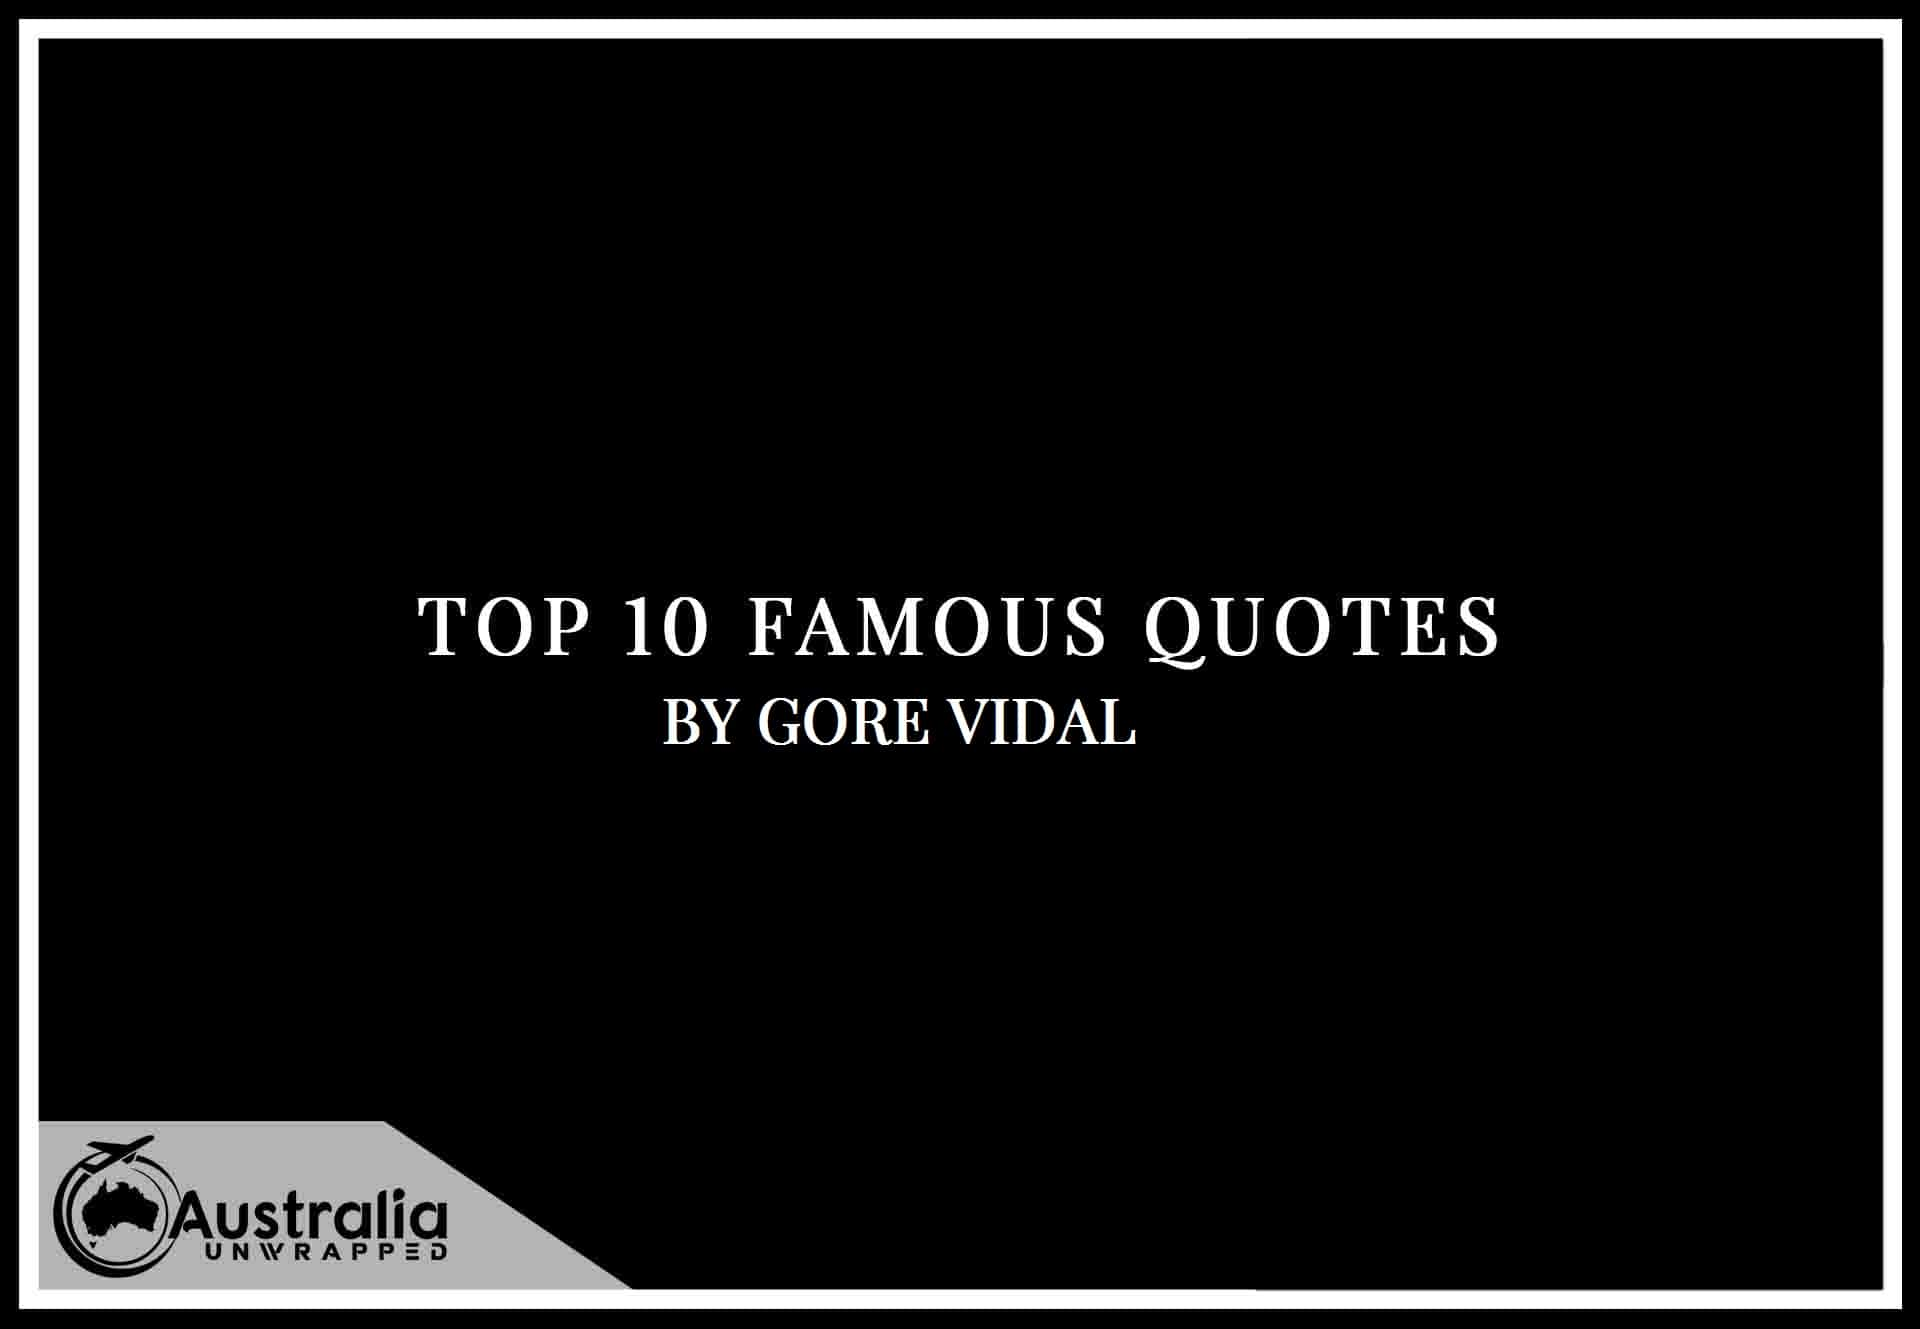 Gore Vidal's Top 10 Popular and Famous Quotes